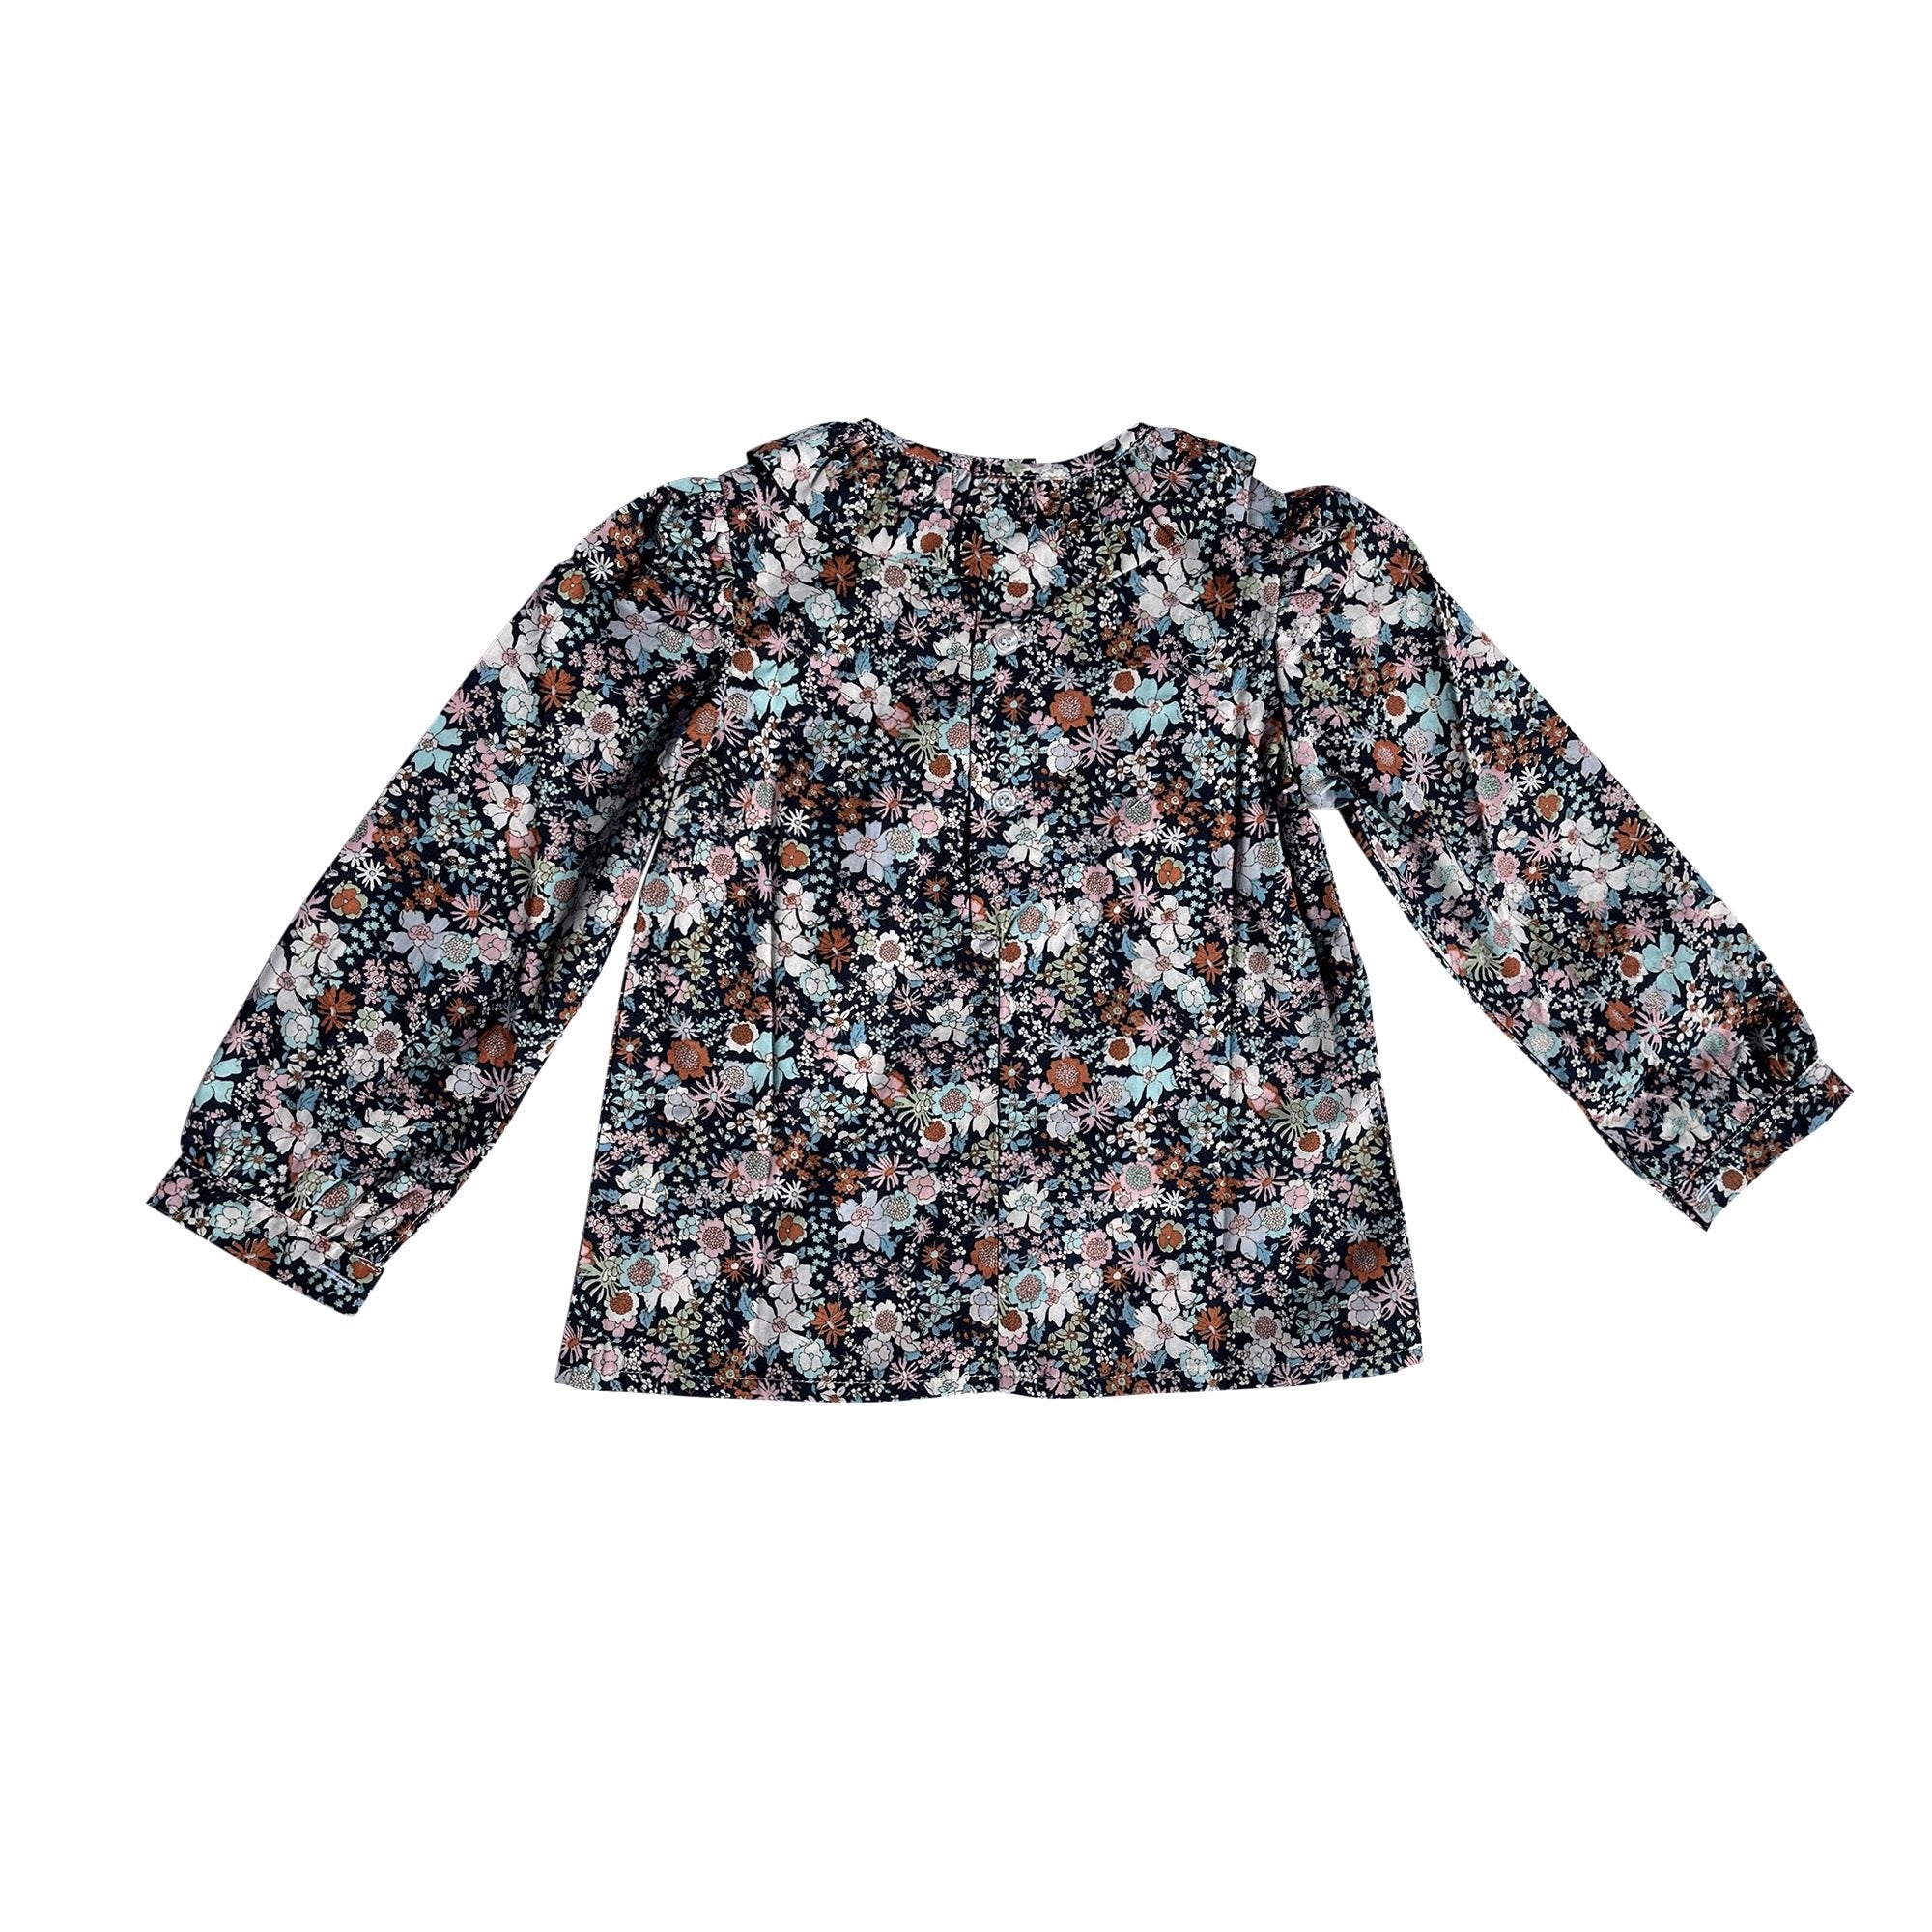 FRILL COLLARED SHIRT IN NAVY FLORAL